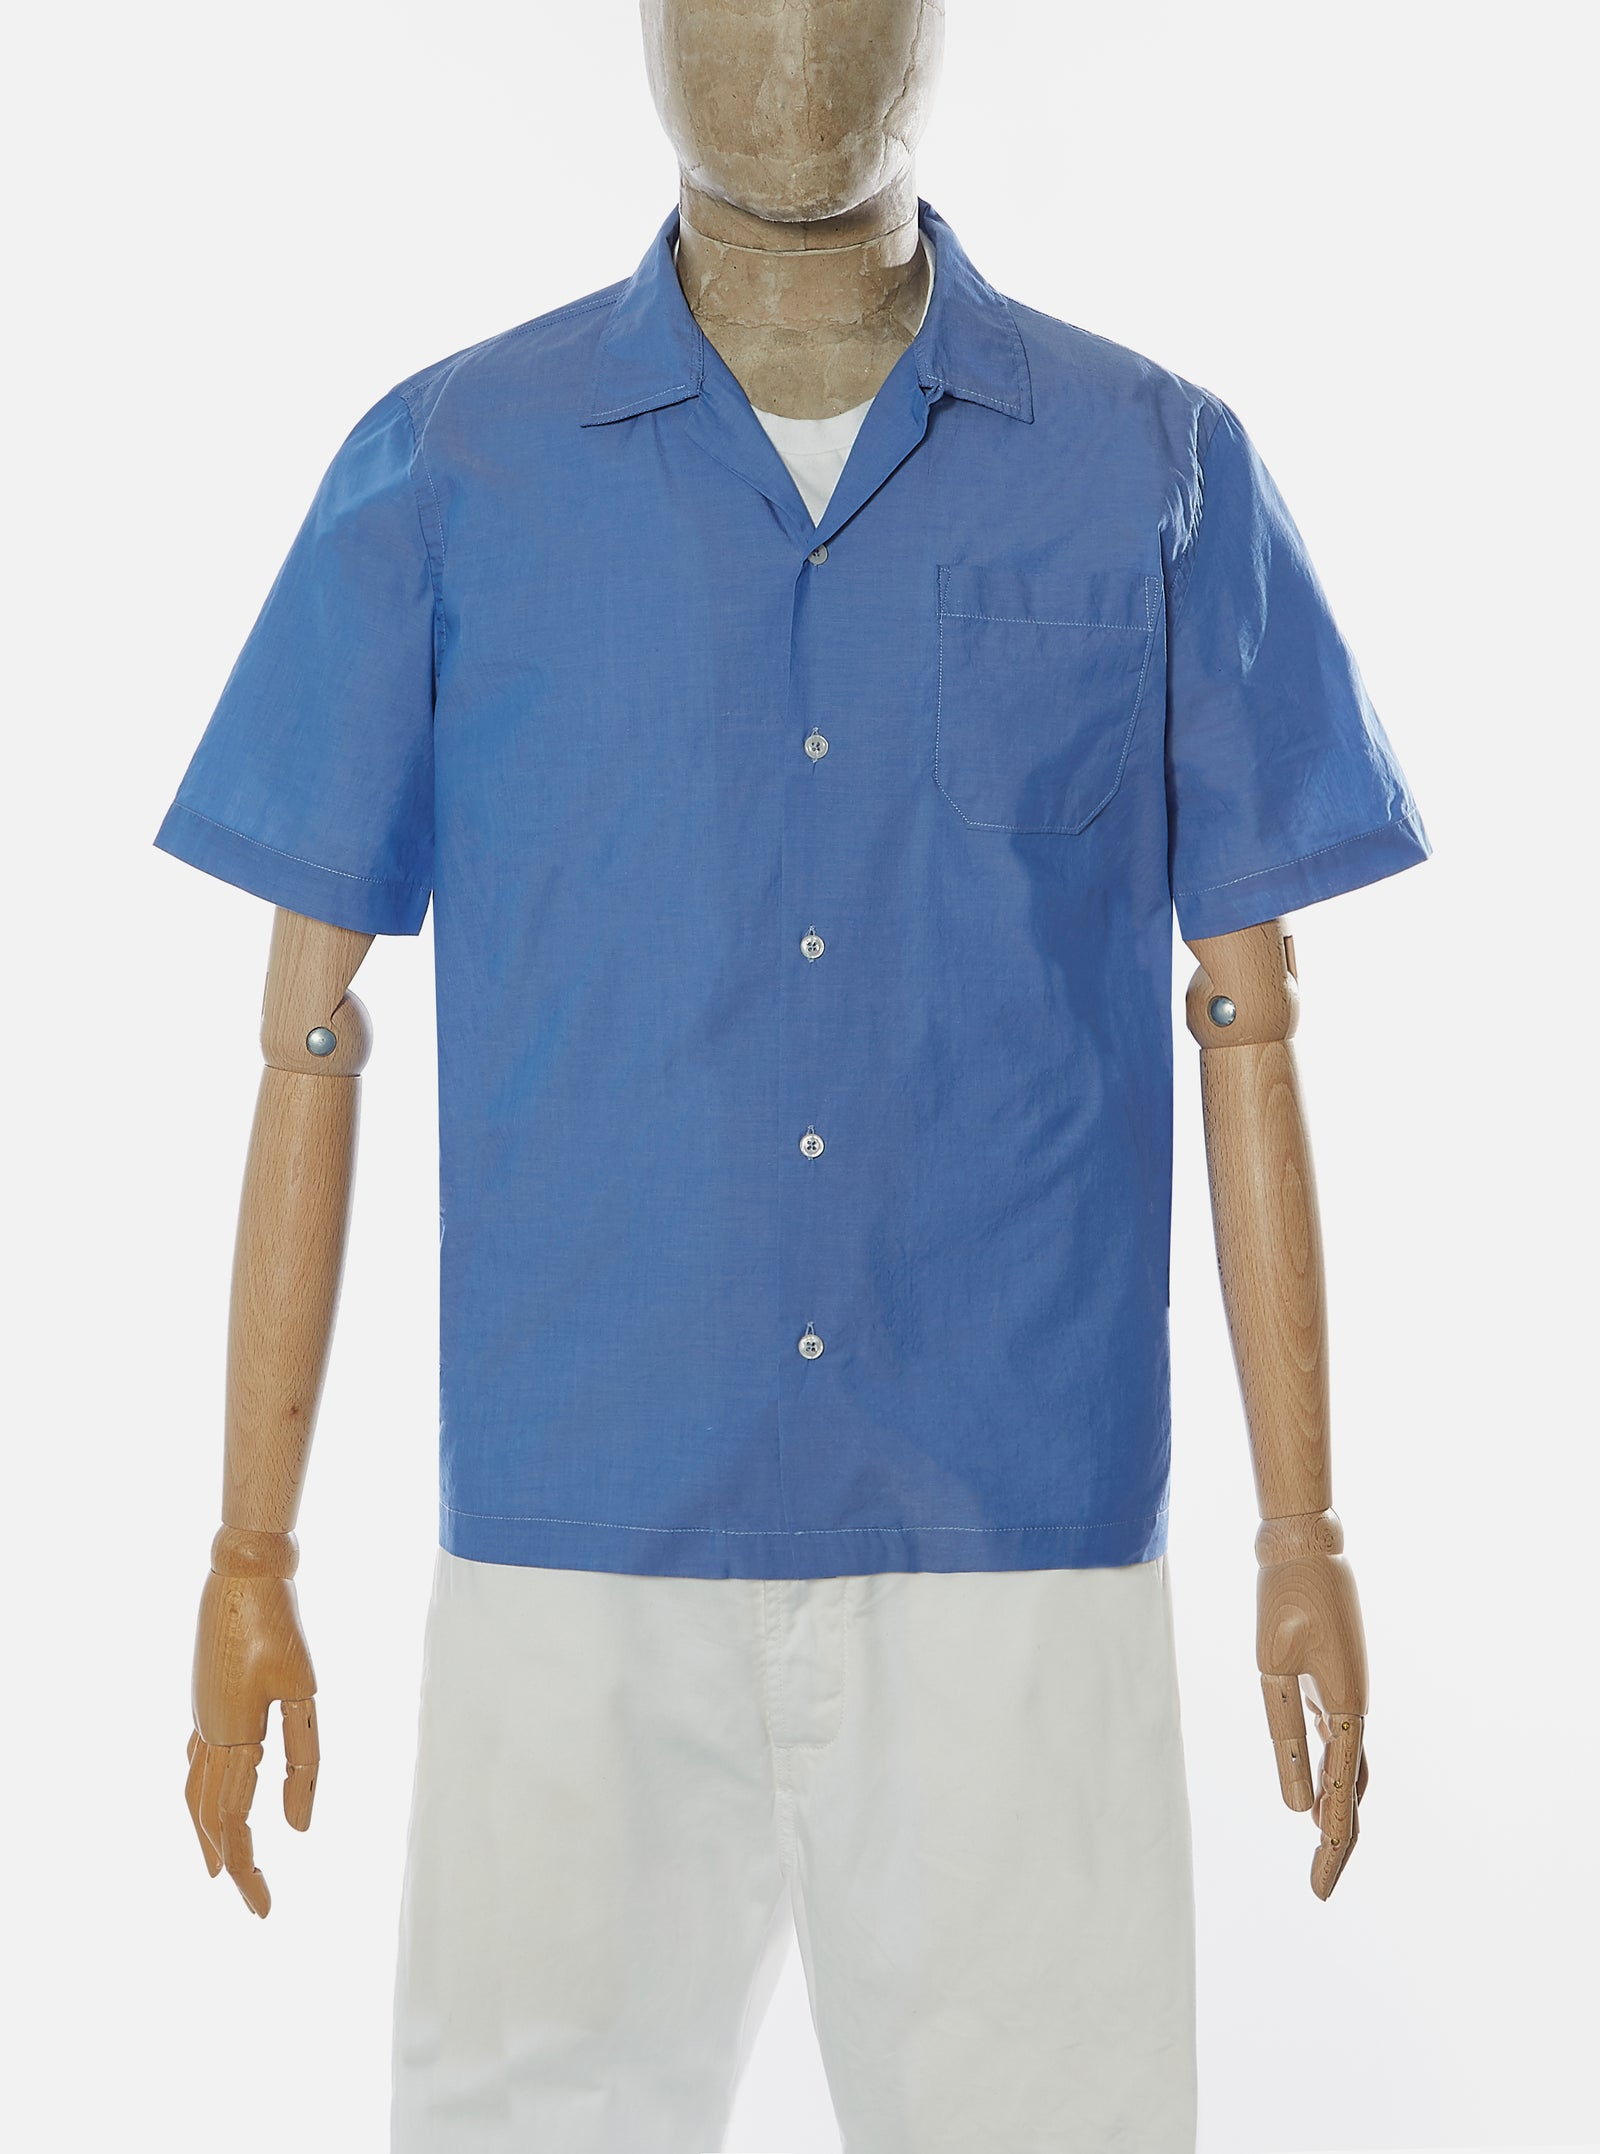 Universal Works Road Shirt in Light Indigo Fine Chambray